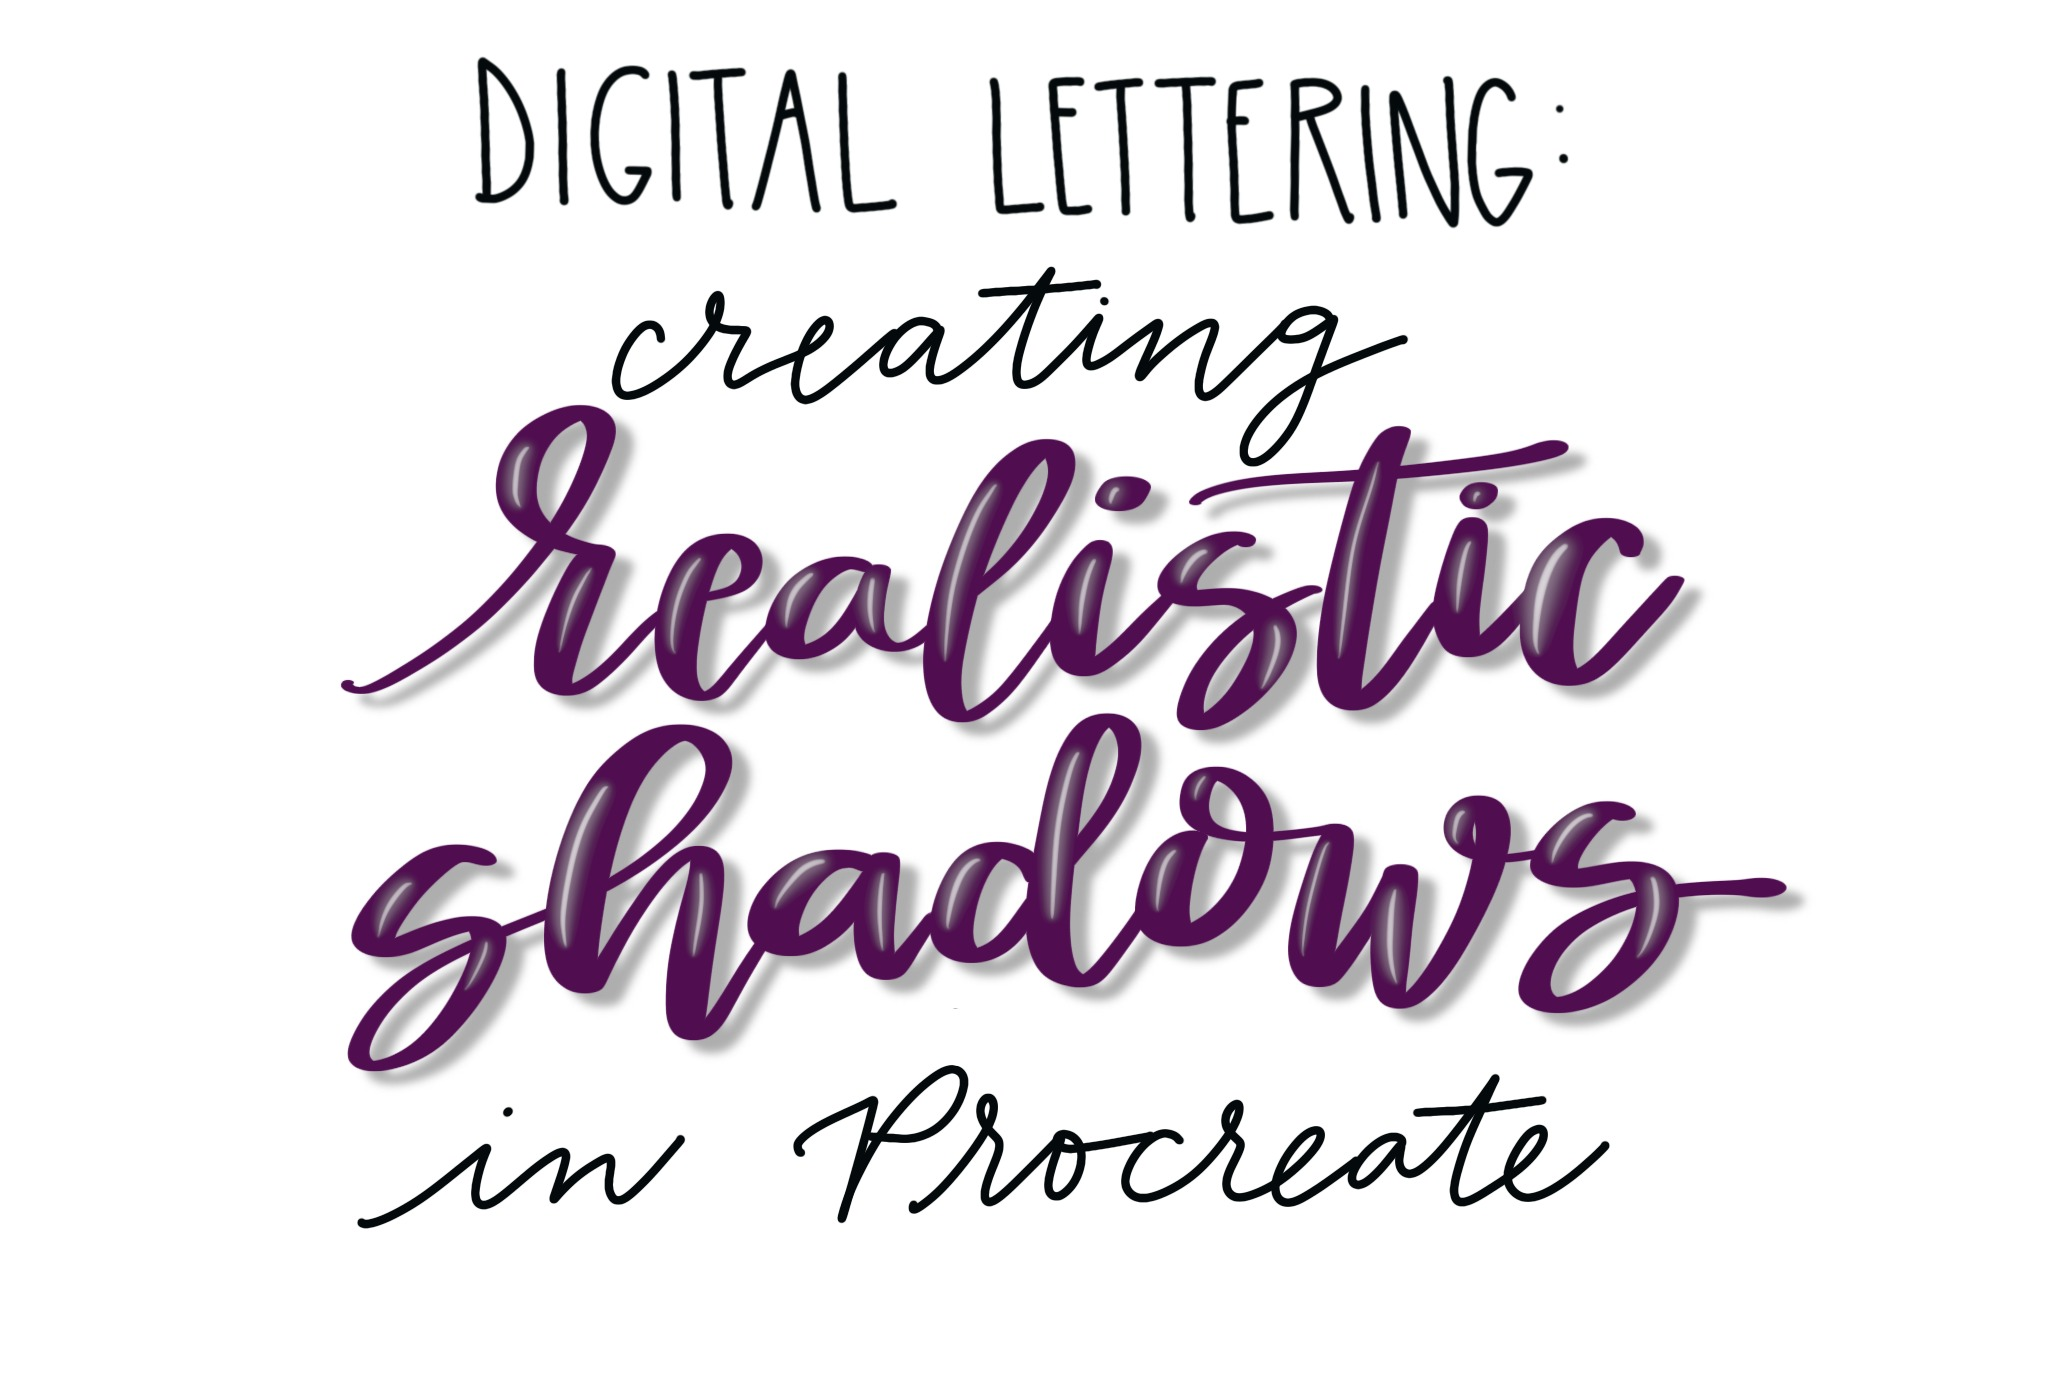 Digital Lettering: Creating Realistic Shadows in Procreate